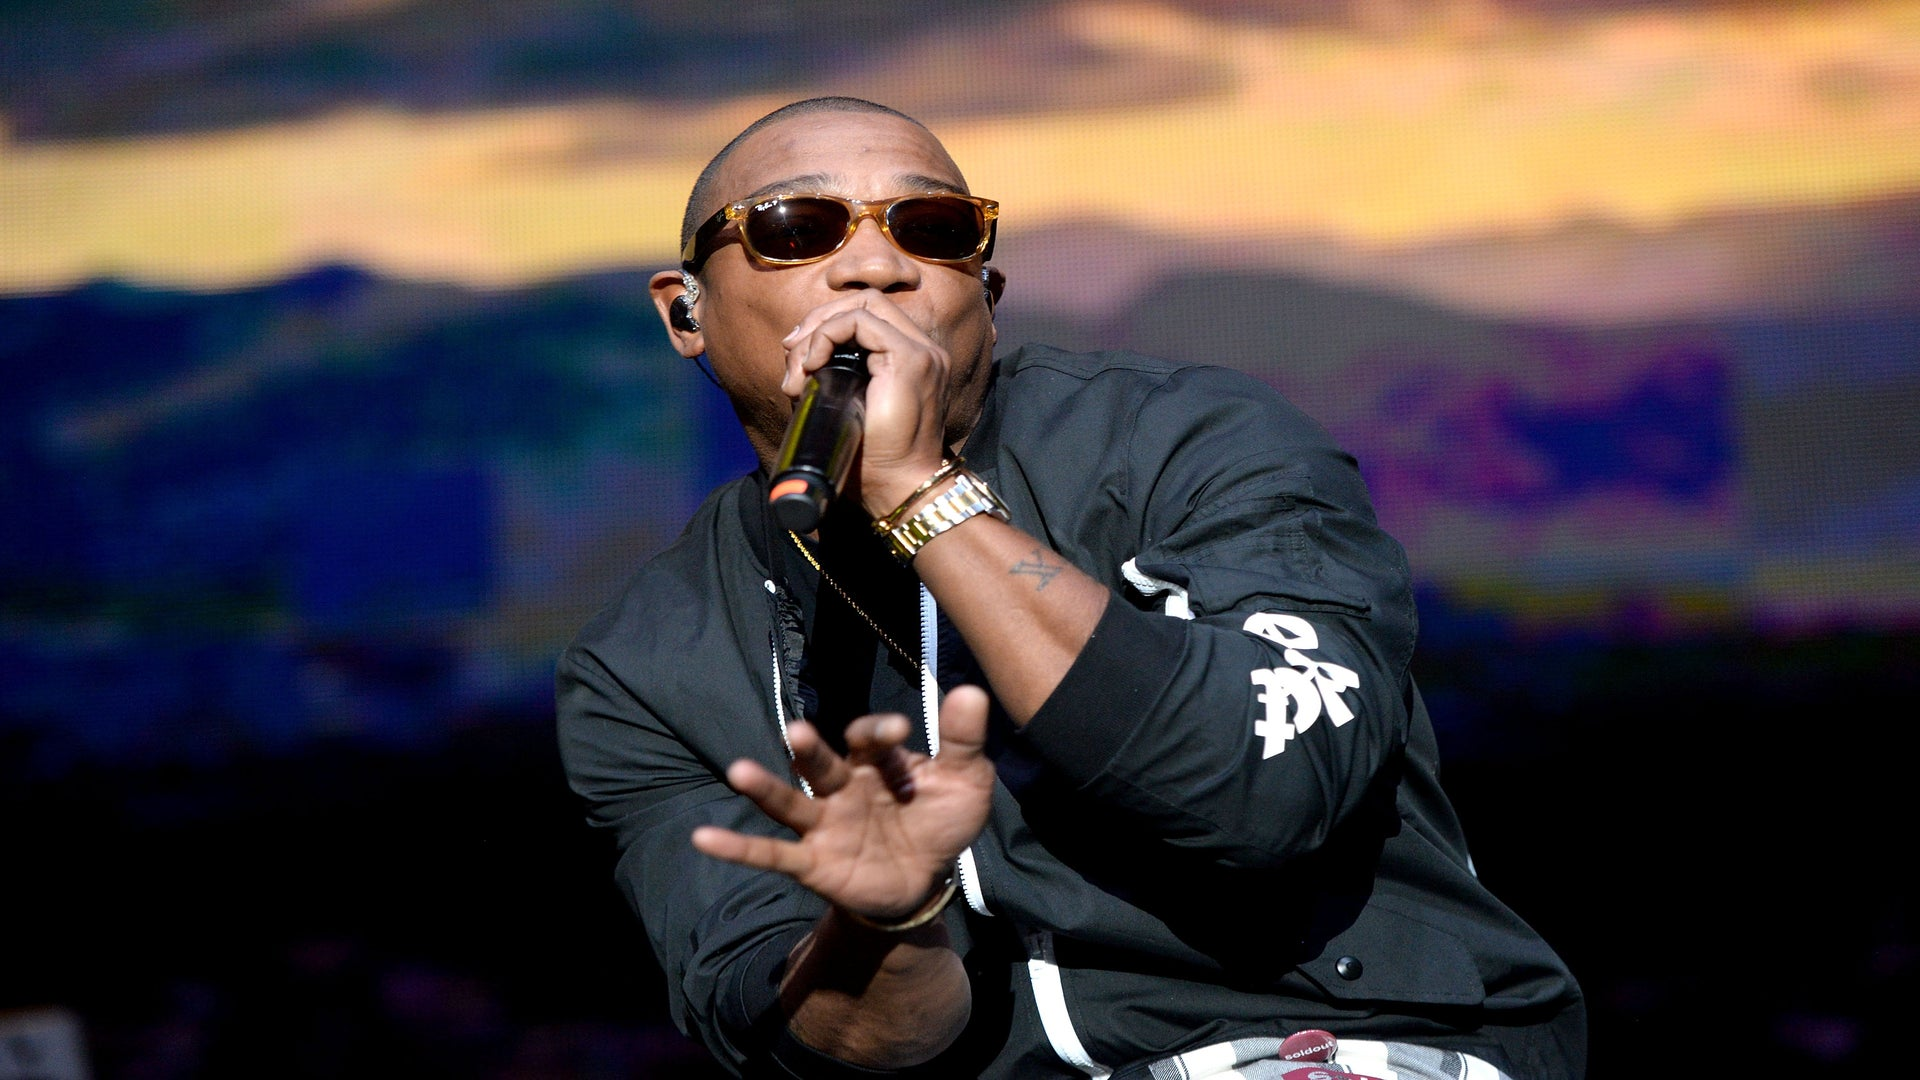 Ja Rule Asks Fans To Cuss Him Out During Concert For Fyre Festival Failure